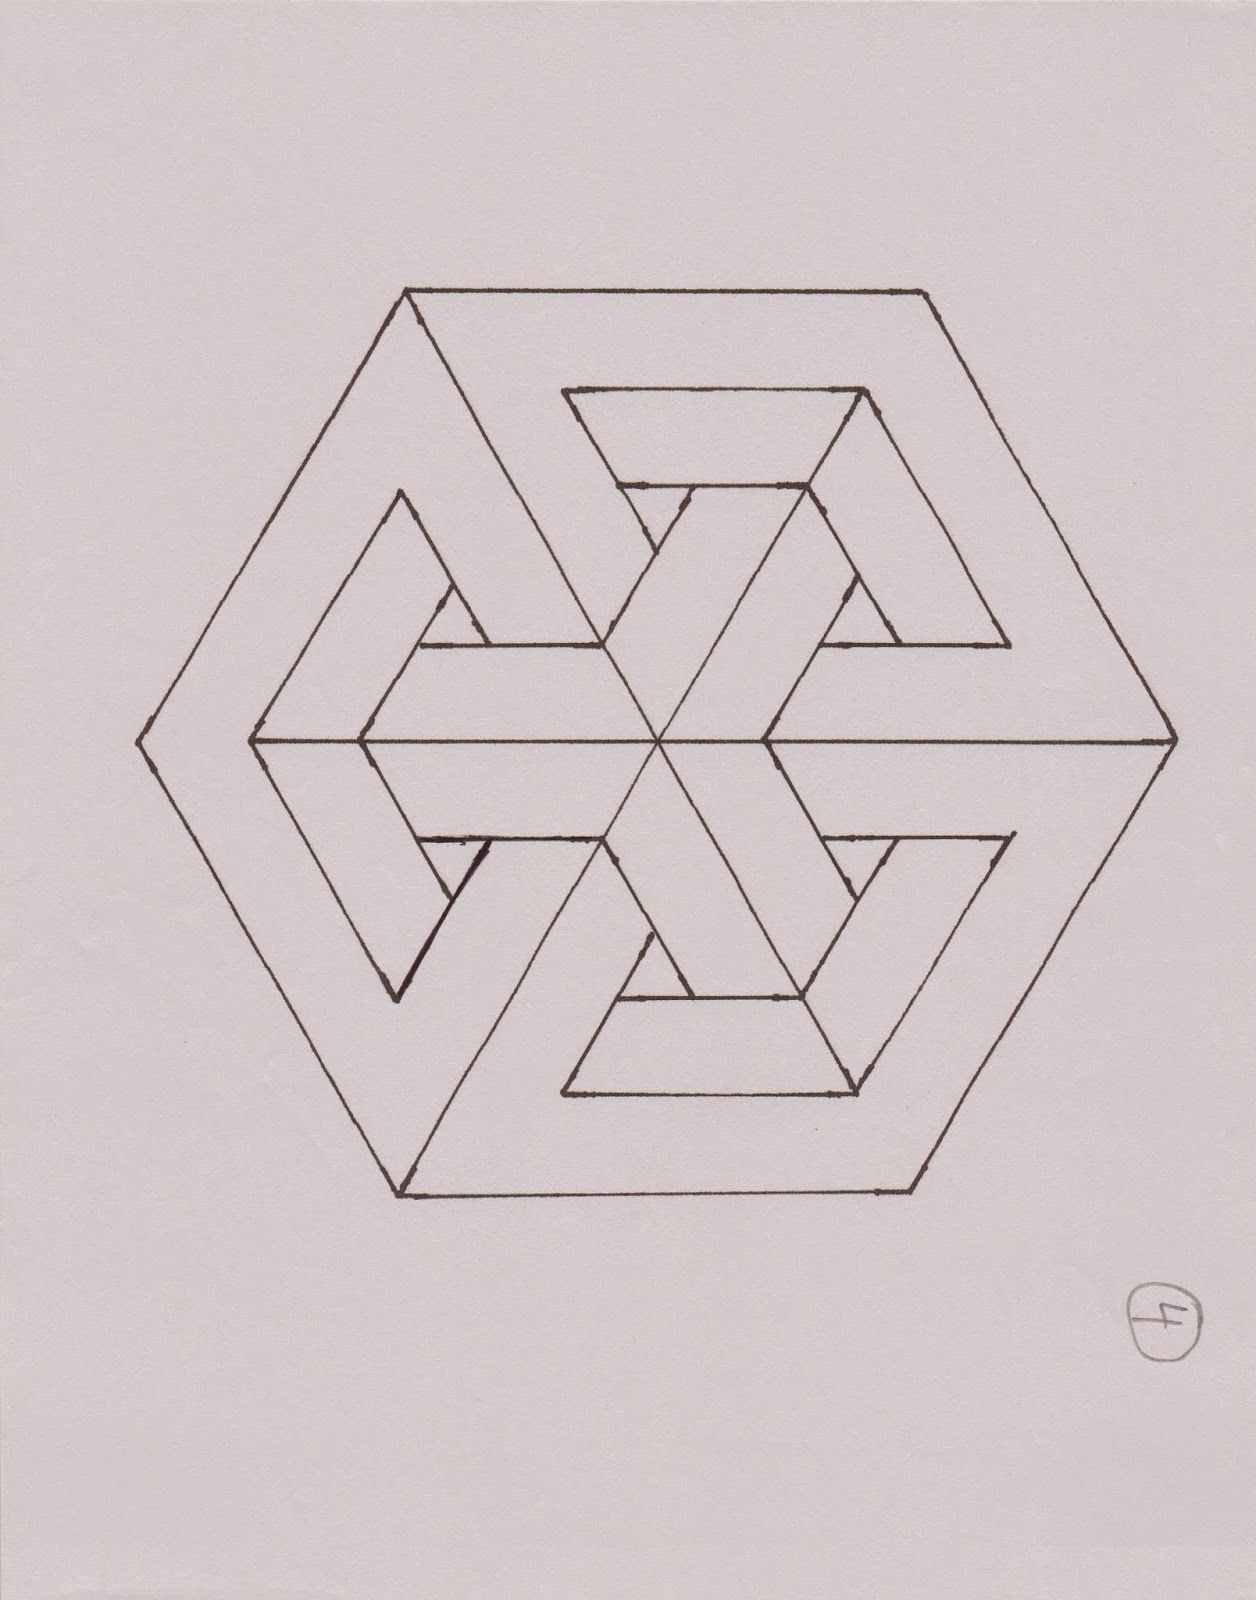 Geometric Sculpture, Geometric Art, Geometric Patterns, Impossible Triangle, Isometric Design,